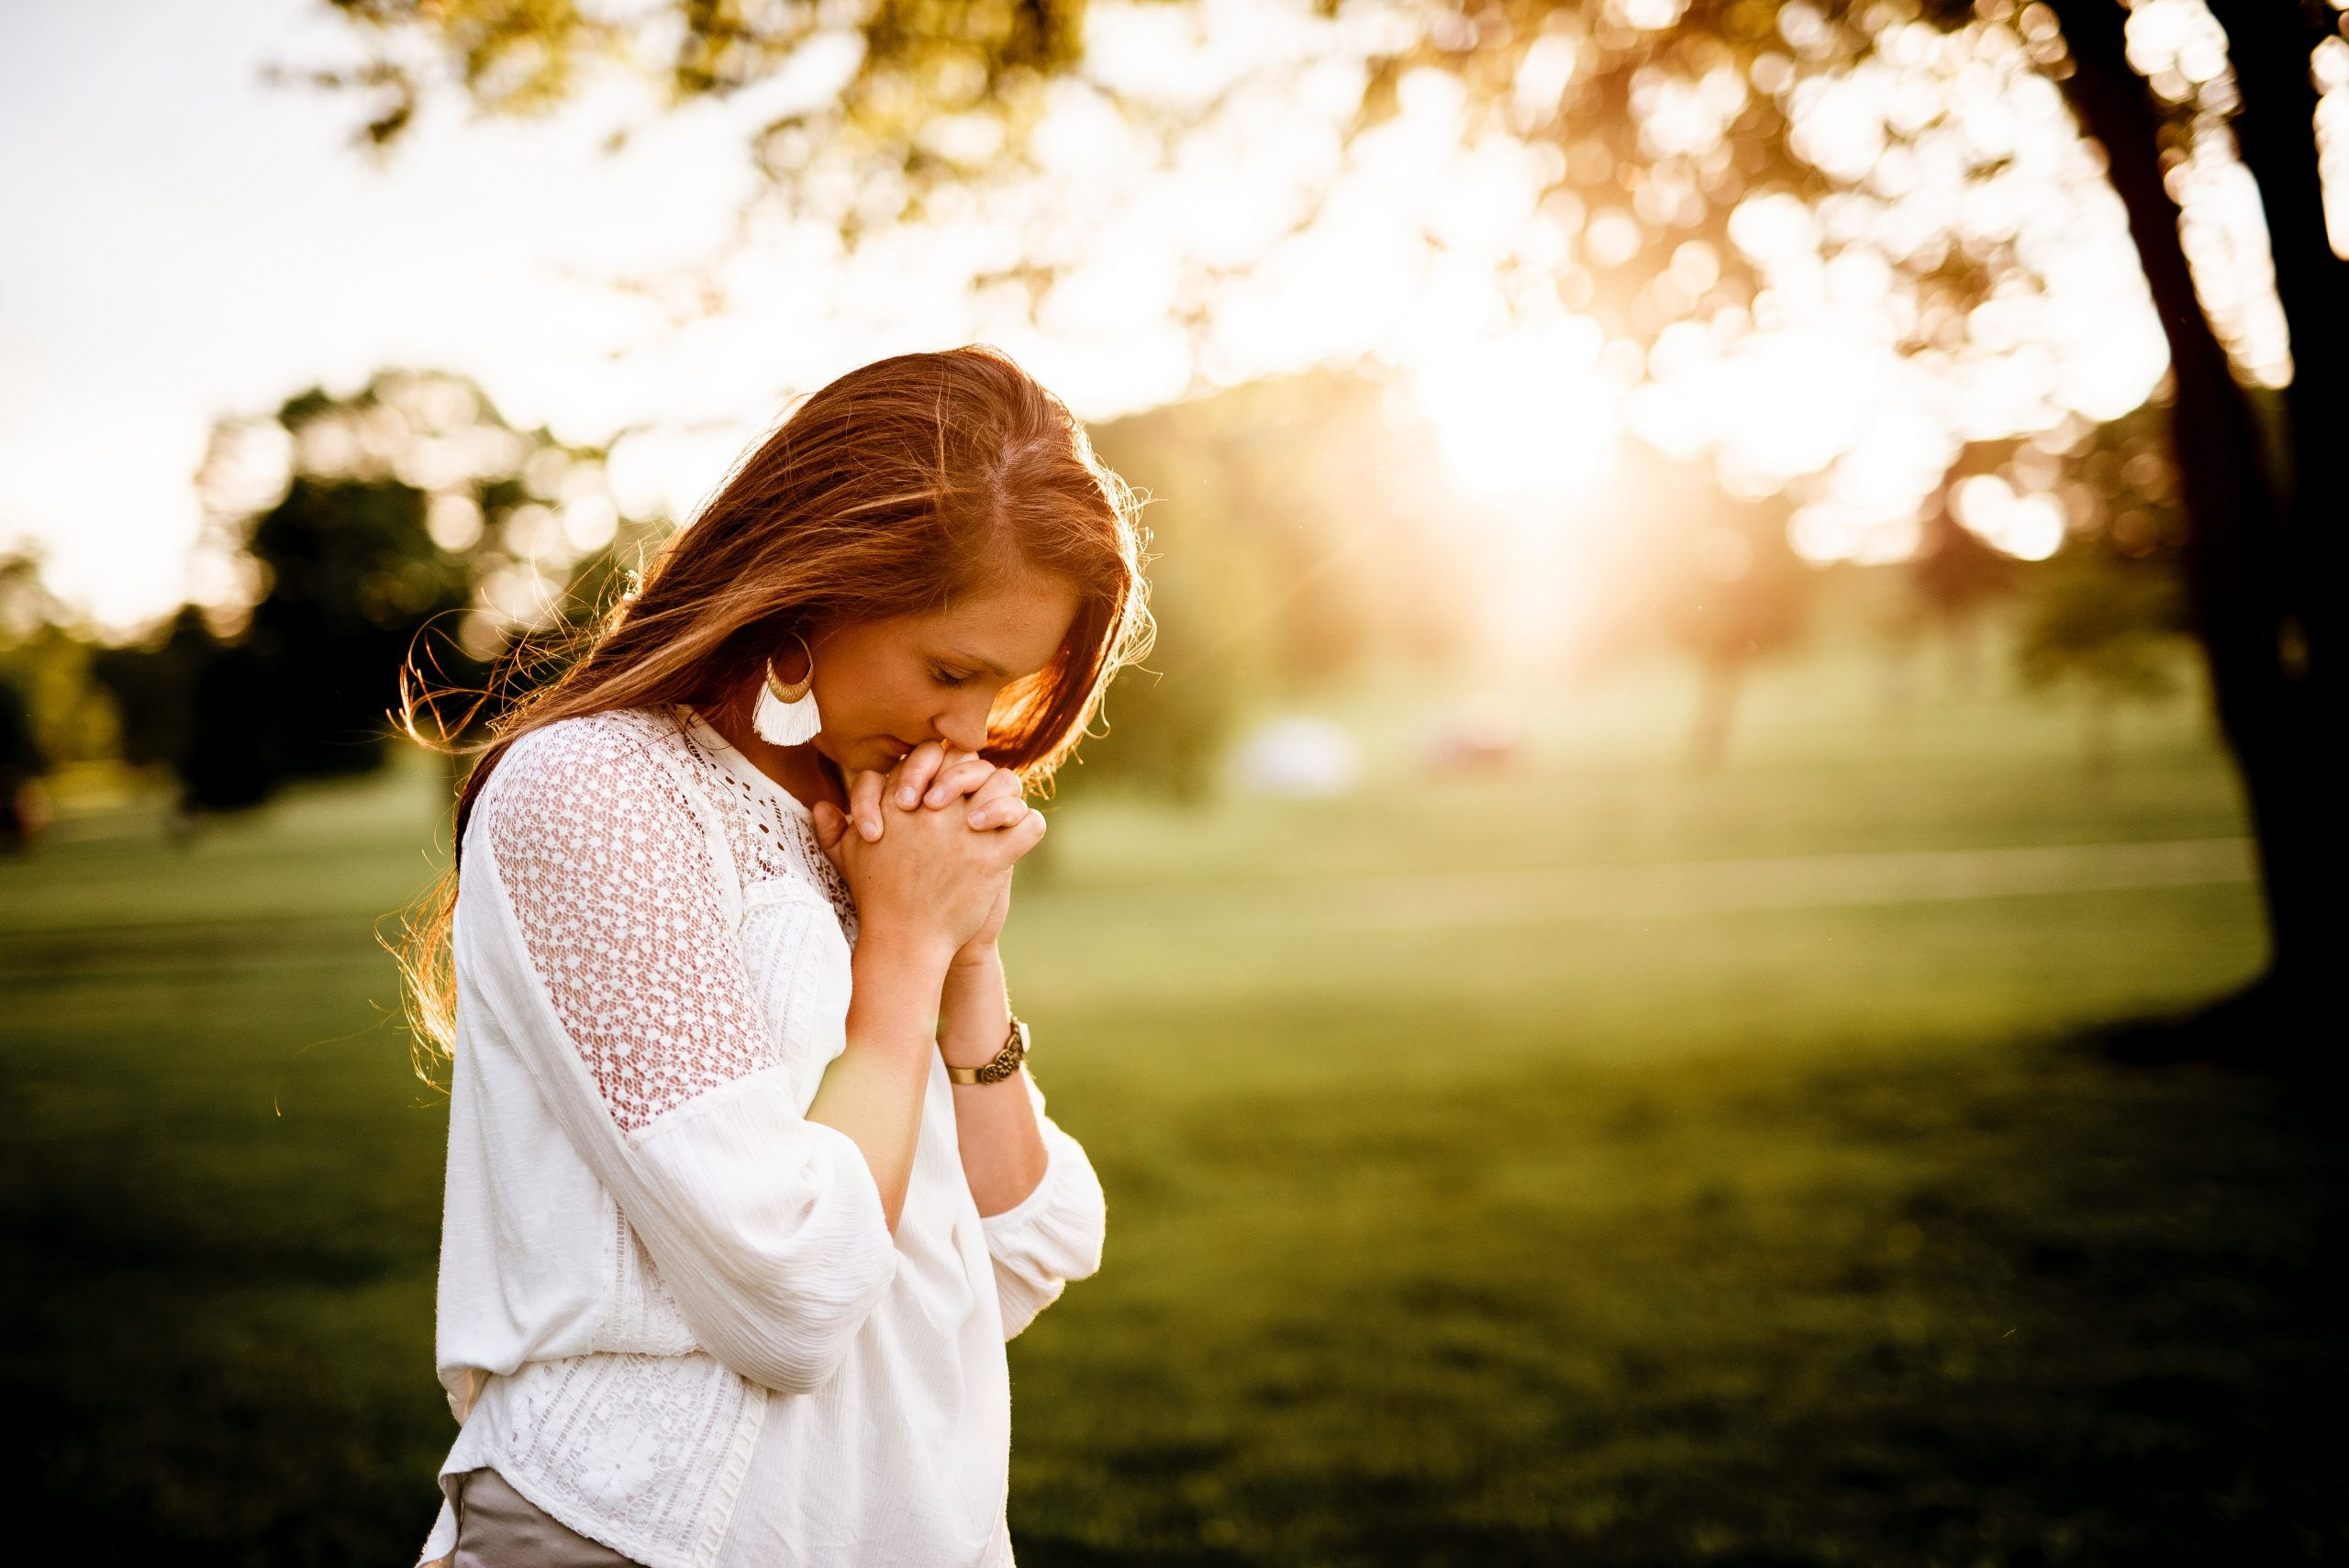 Prayers That Get God's Attention